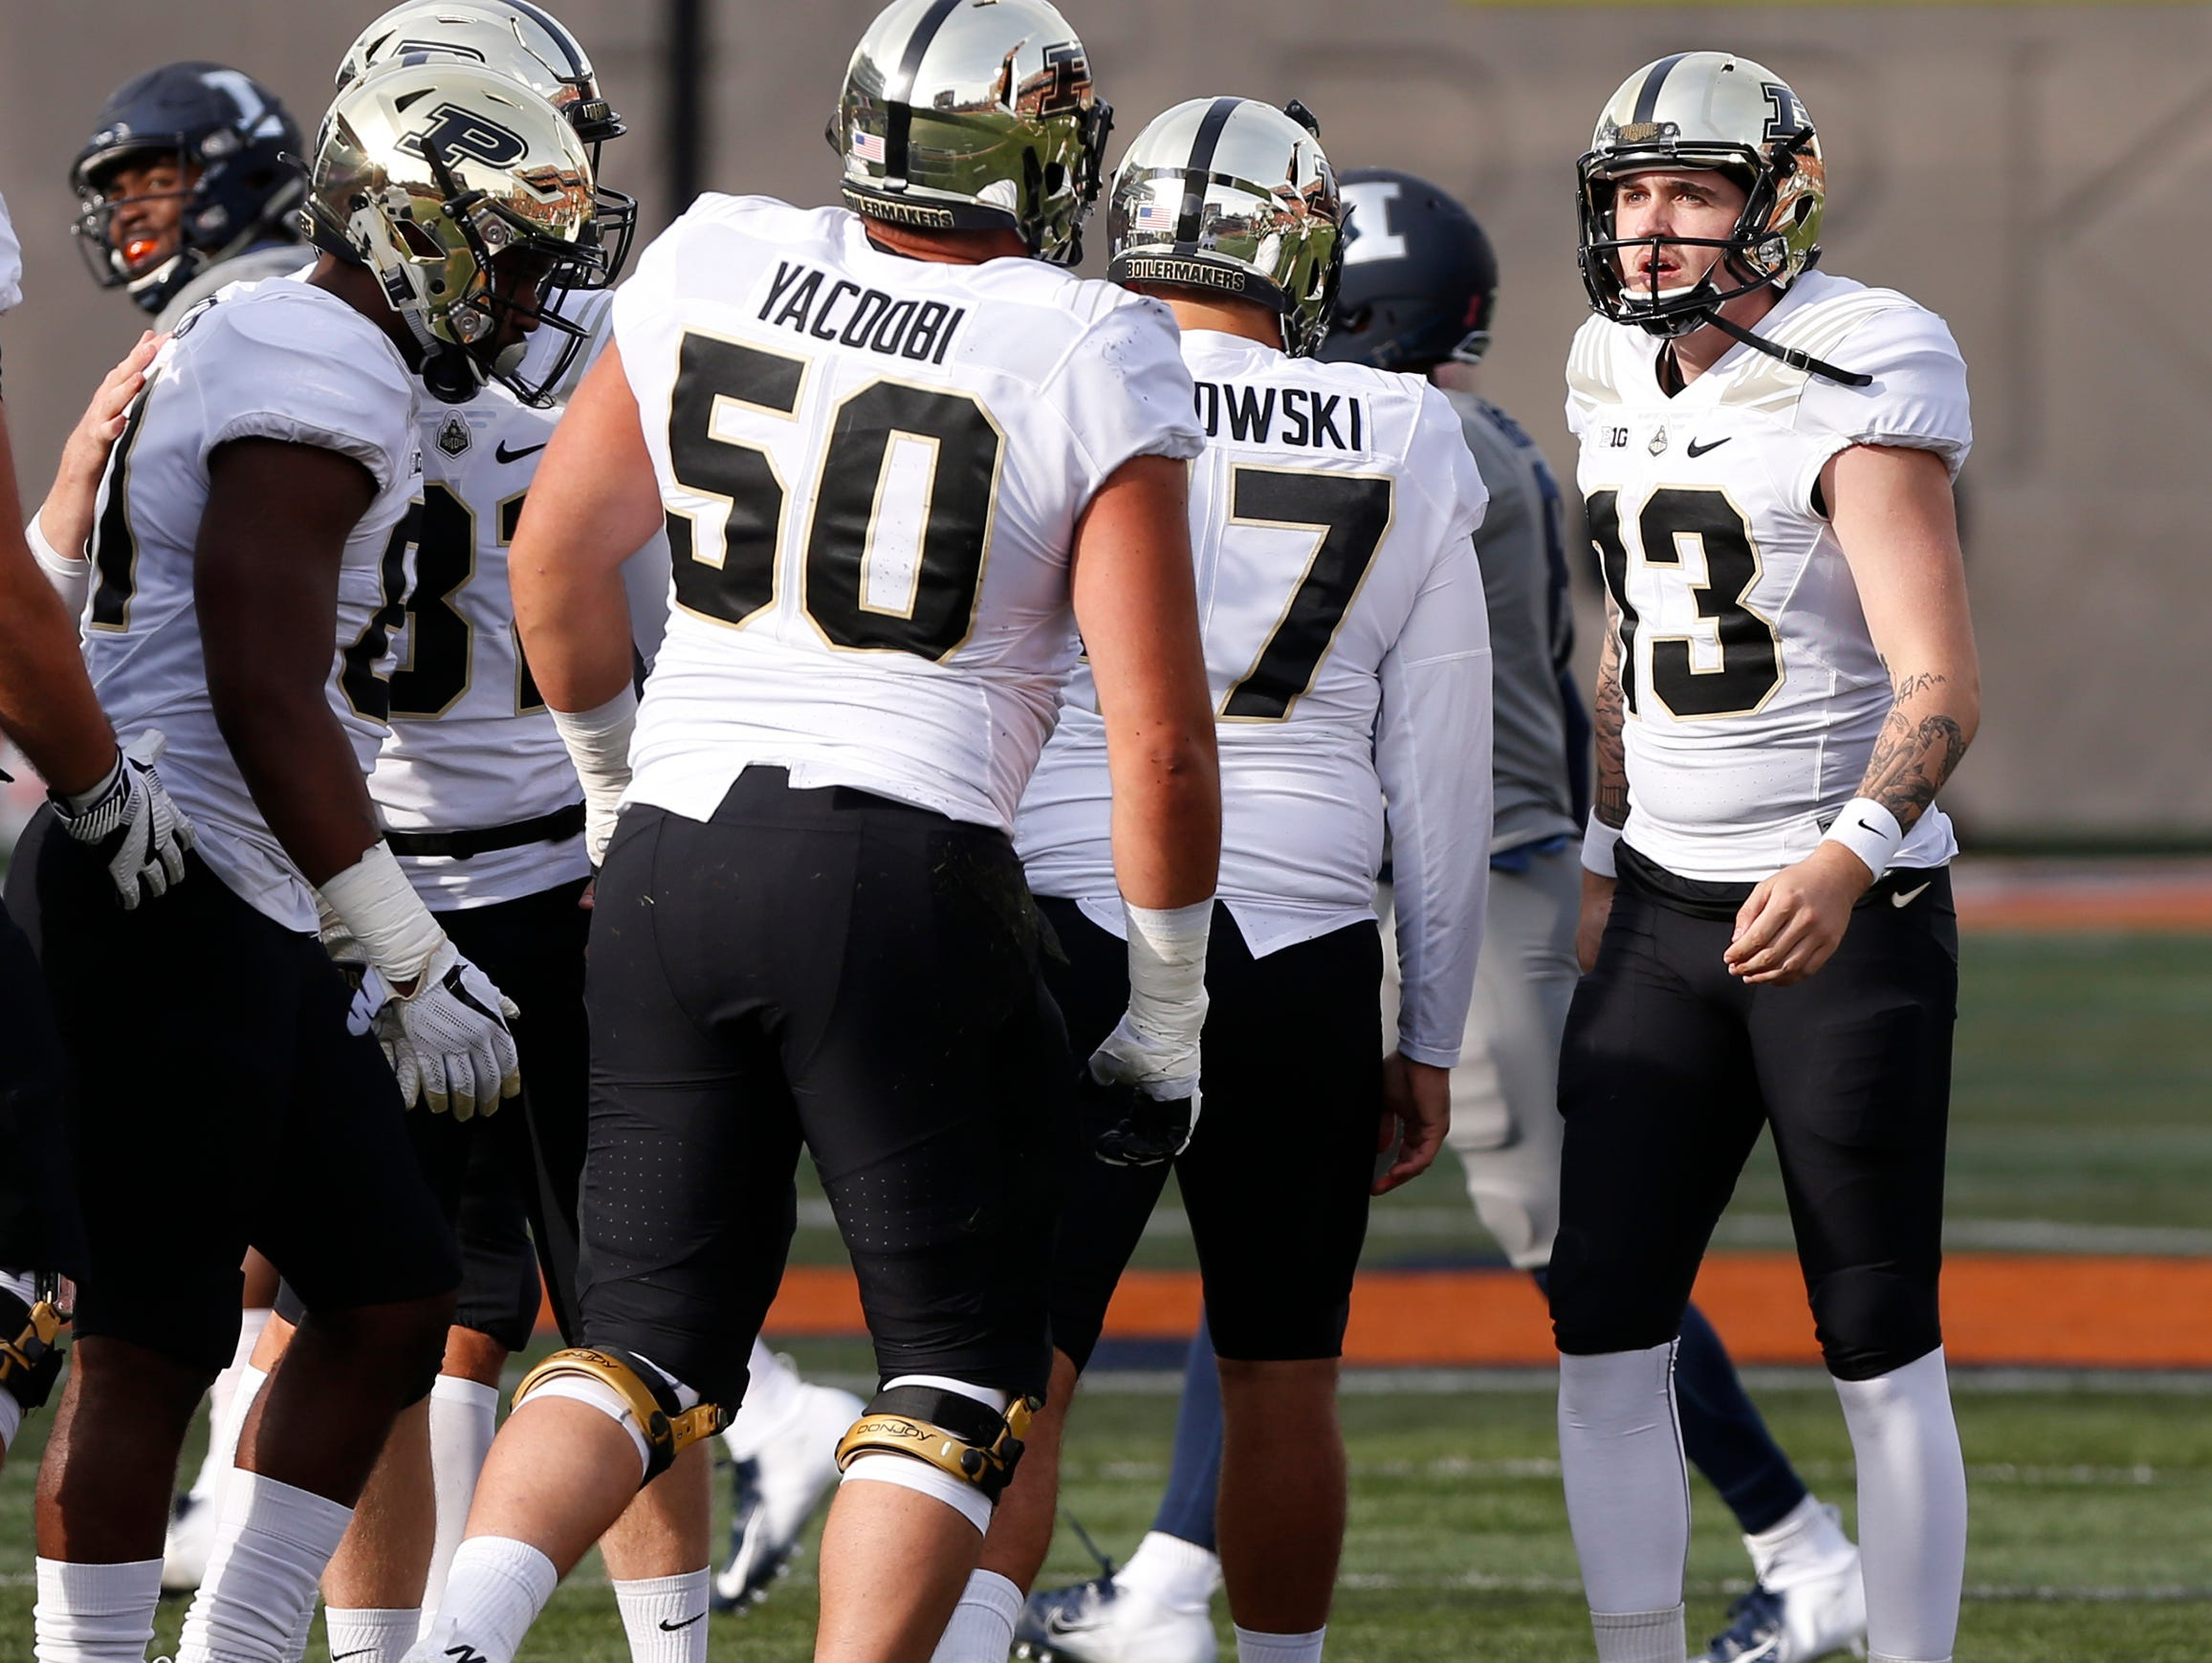 Purdue kicker Spencer Evans thanks his teammates after kicking a field goal at 6:15 in the second quarter against Illinois Saturday, October 13, 2018, in Champaign, Illinois. Purdue defeated Illinois 46-7.